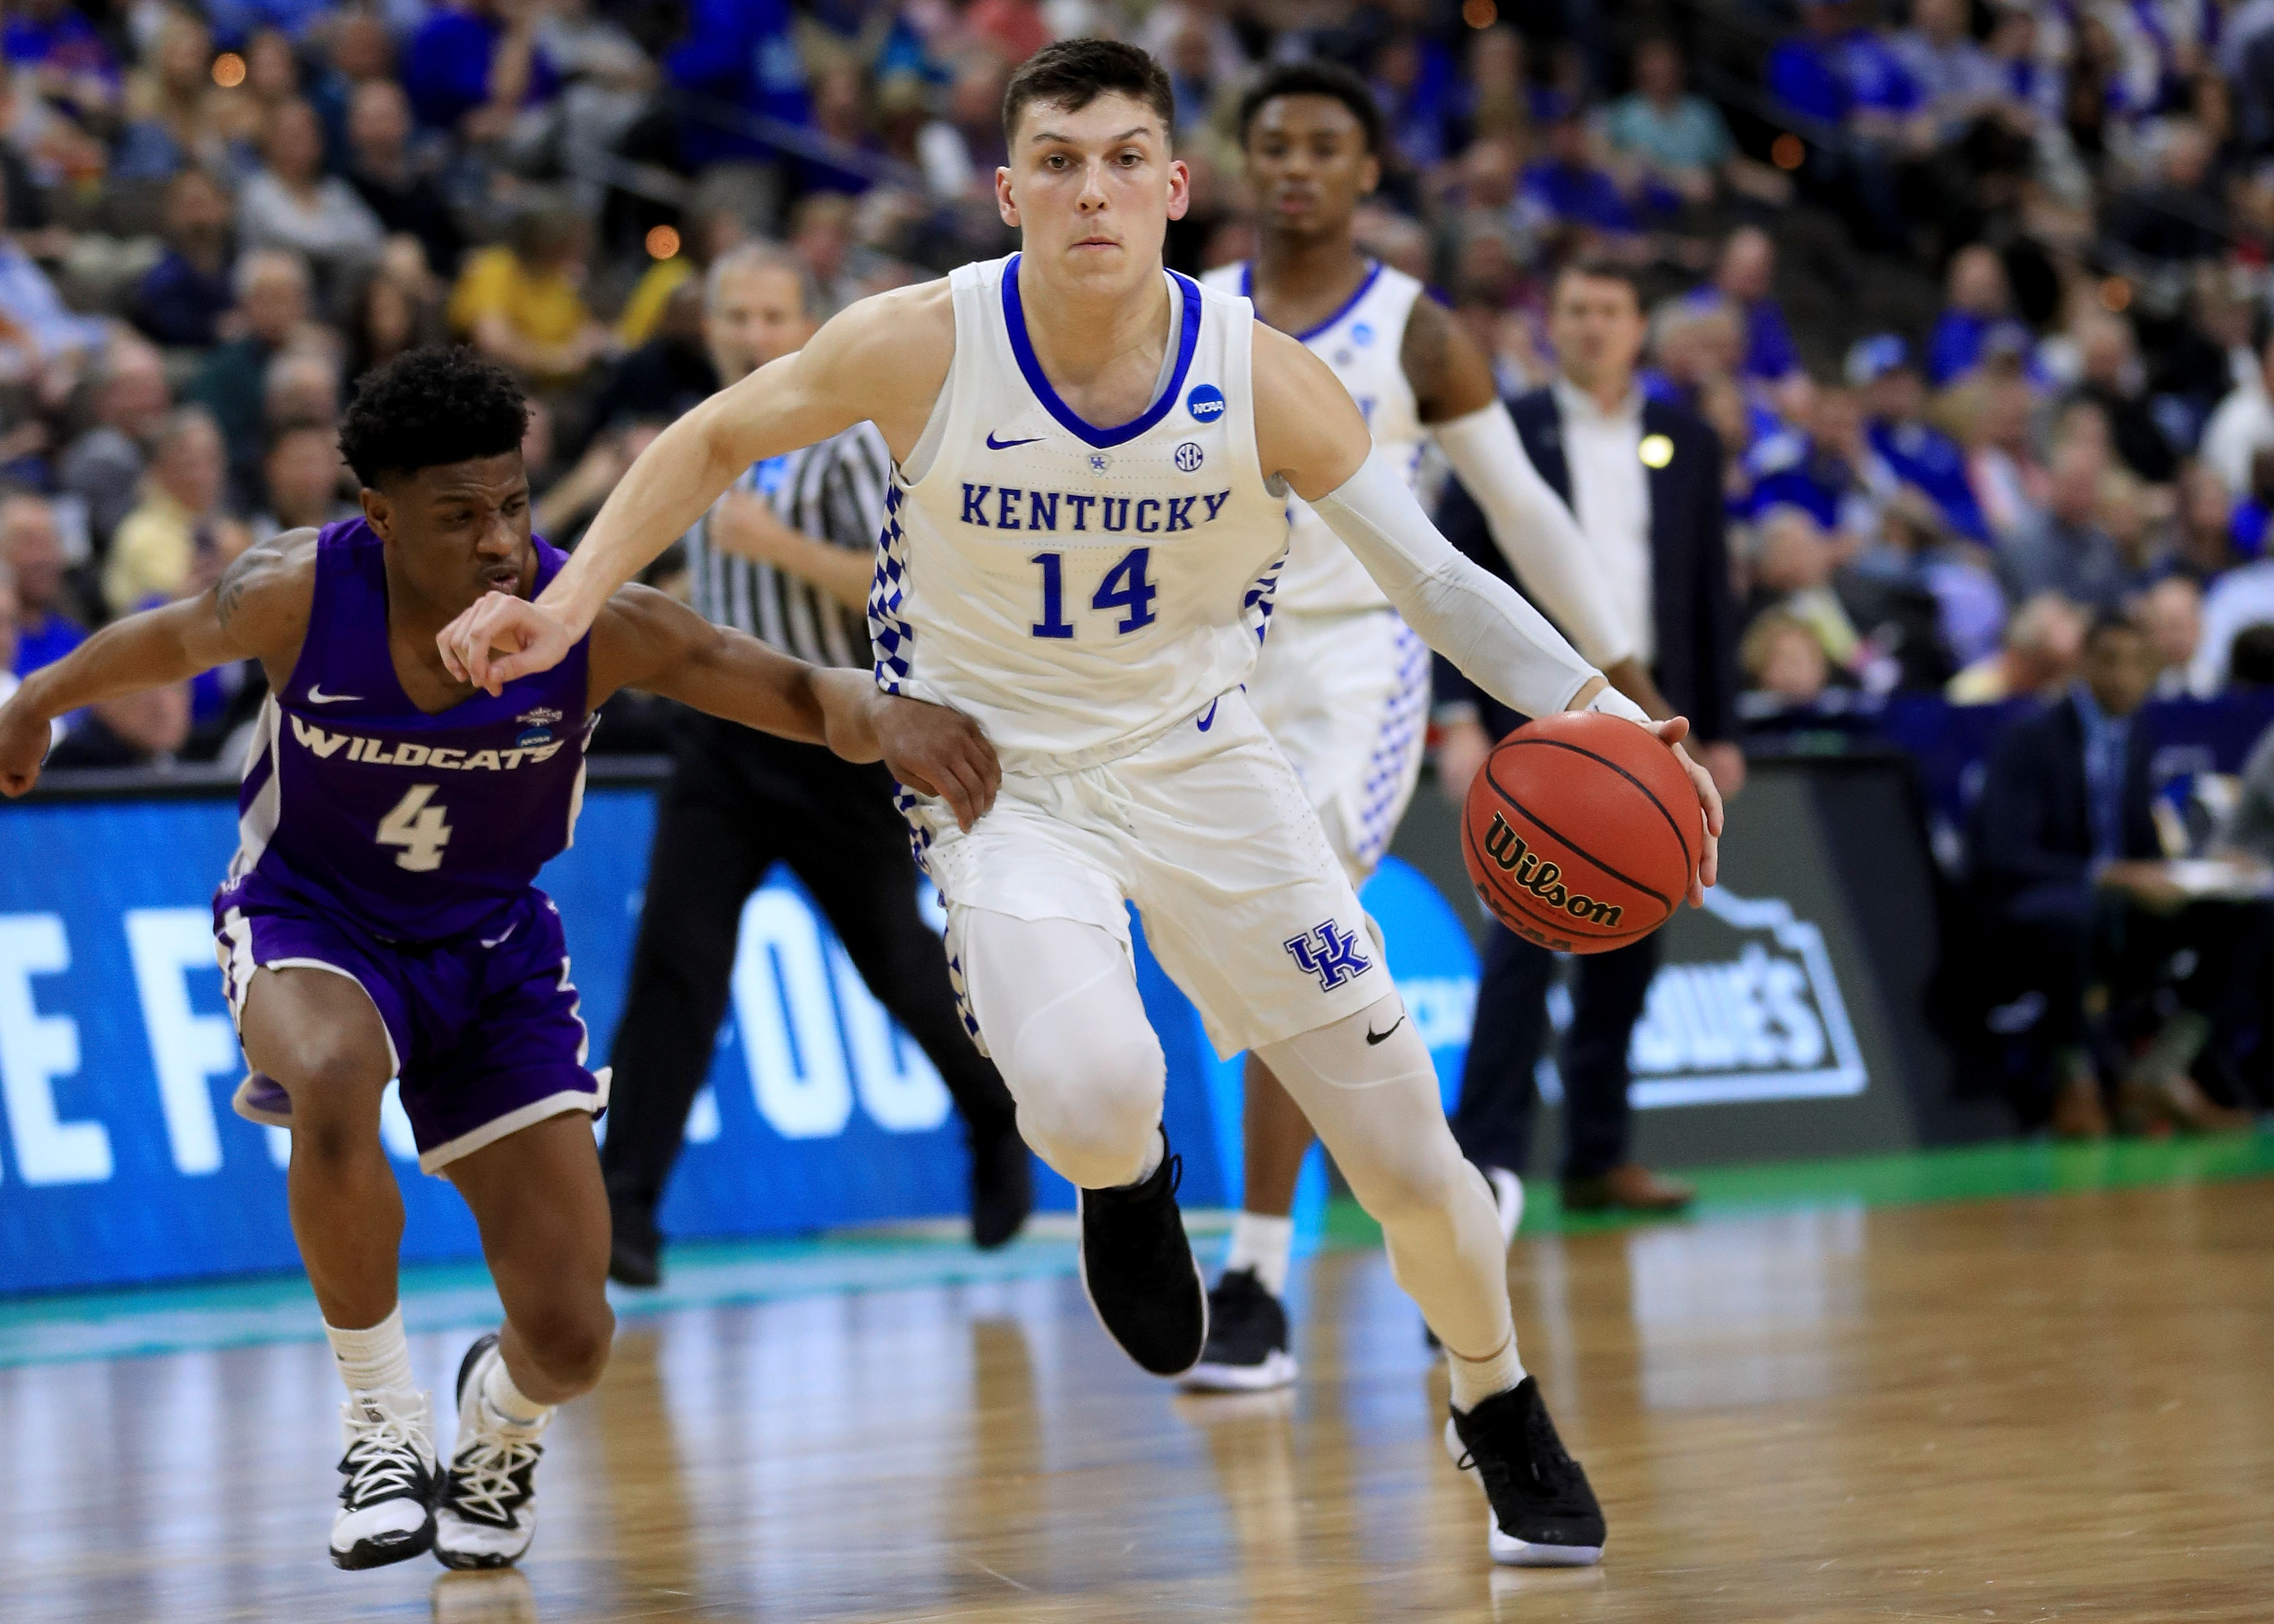 March Madness 2019: 5 burning questions to determine Sweet 16 teams Saturday